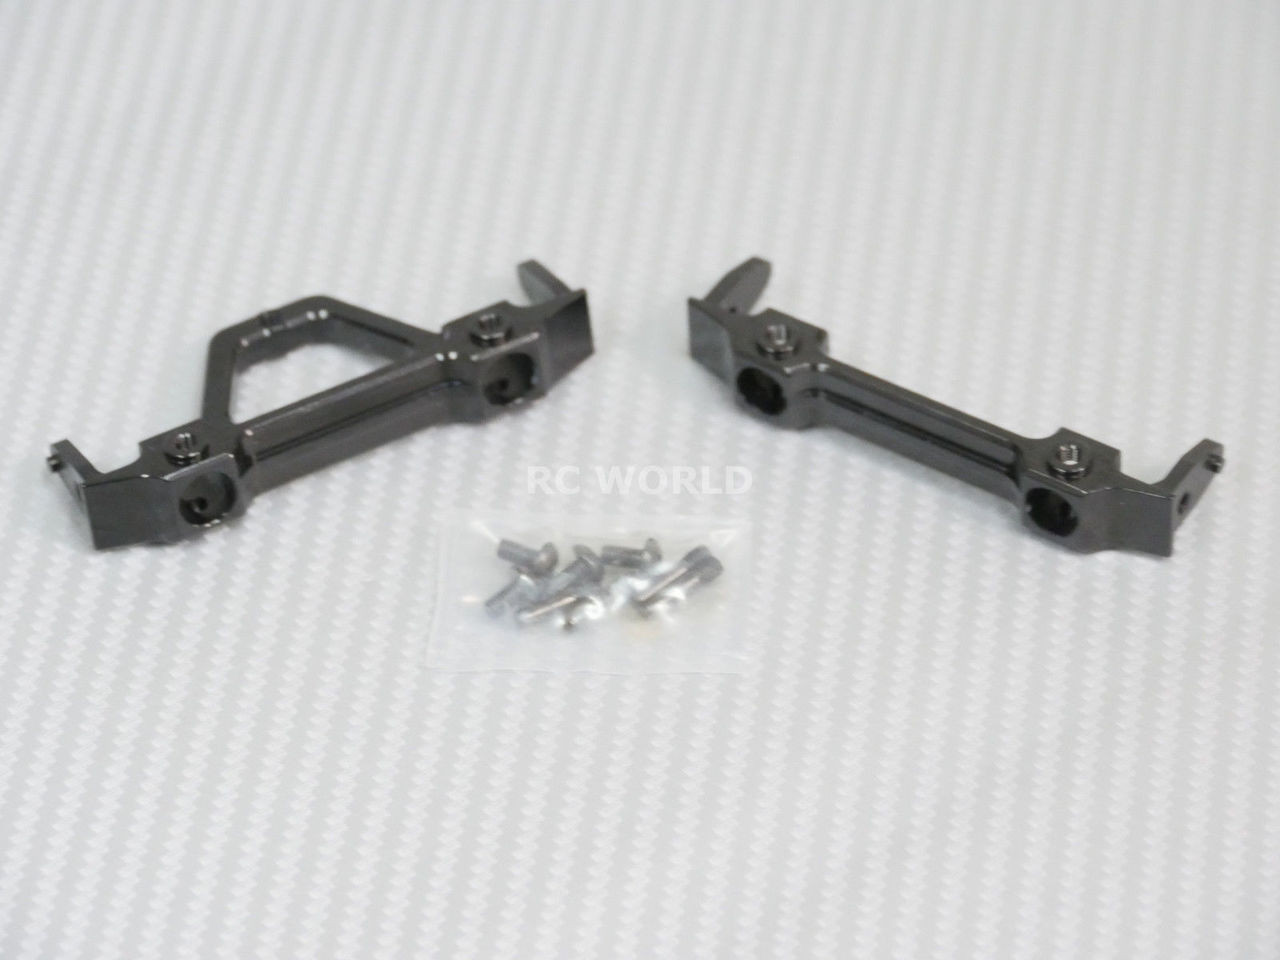 2Set RC Car Metal Shackle Mounting Bracket Crawler Accessories for SCX10 L/&6